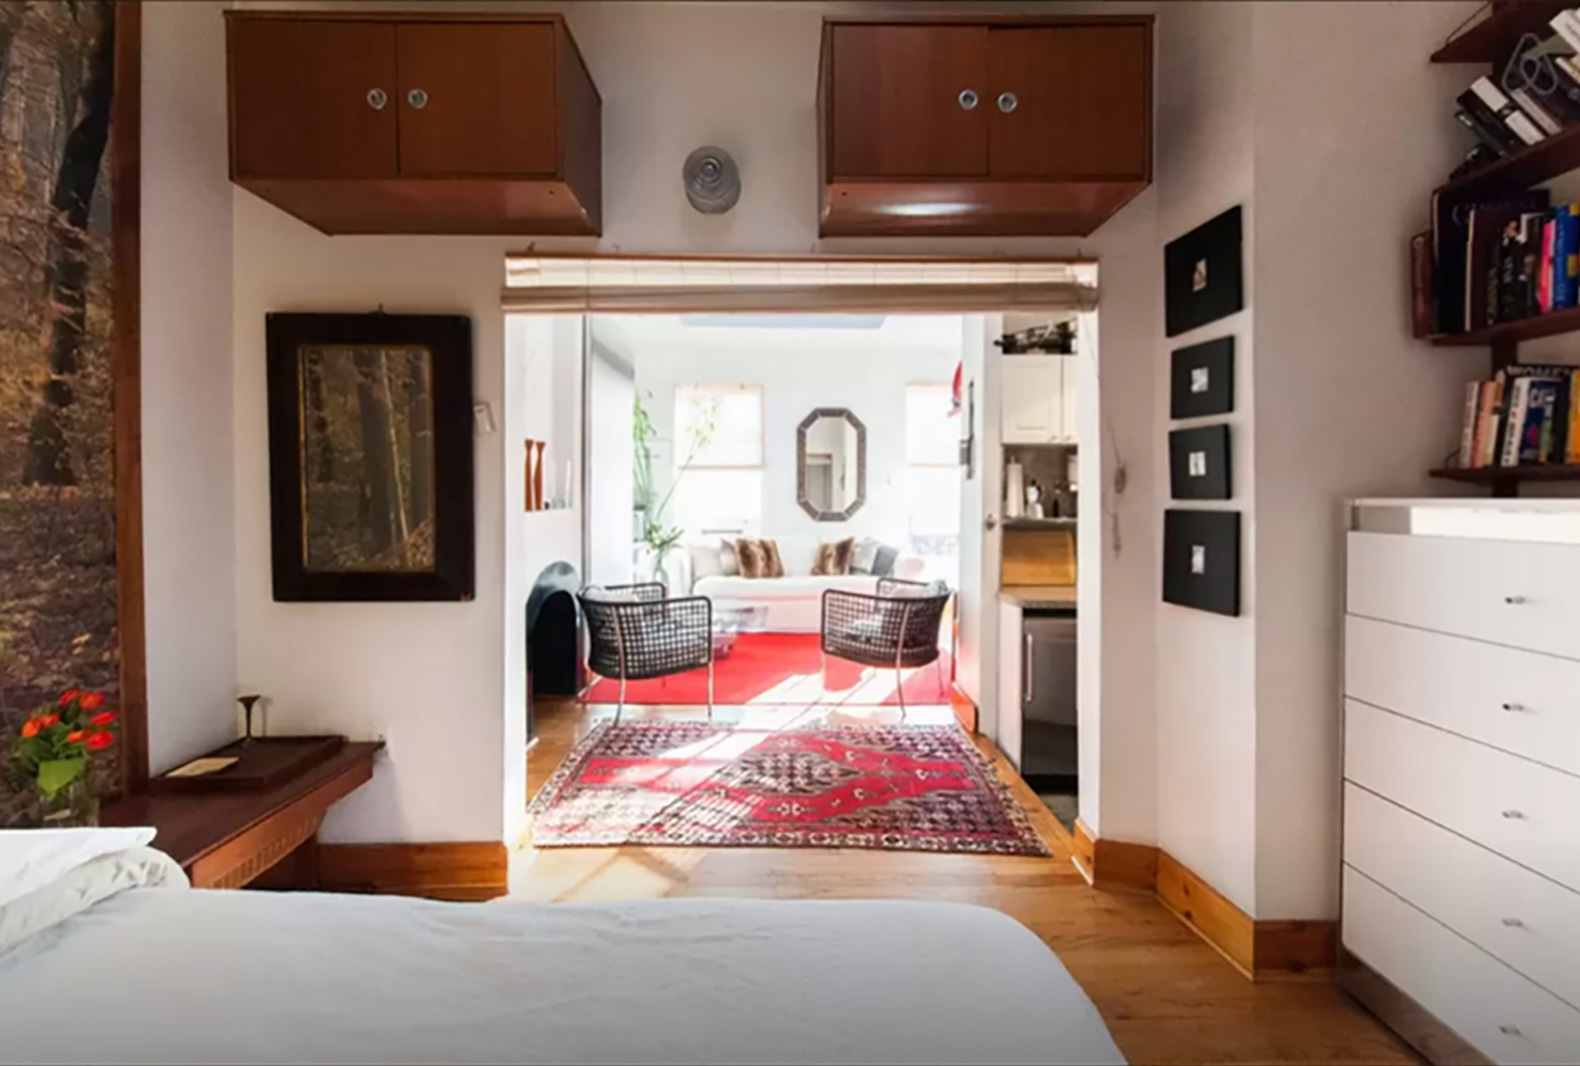 Stylish 325sqft studio uses a clever design trick to create the